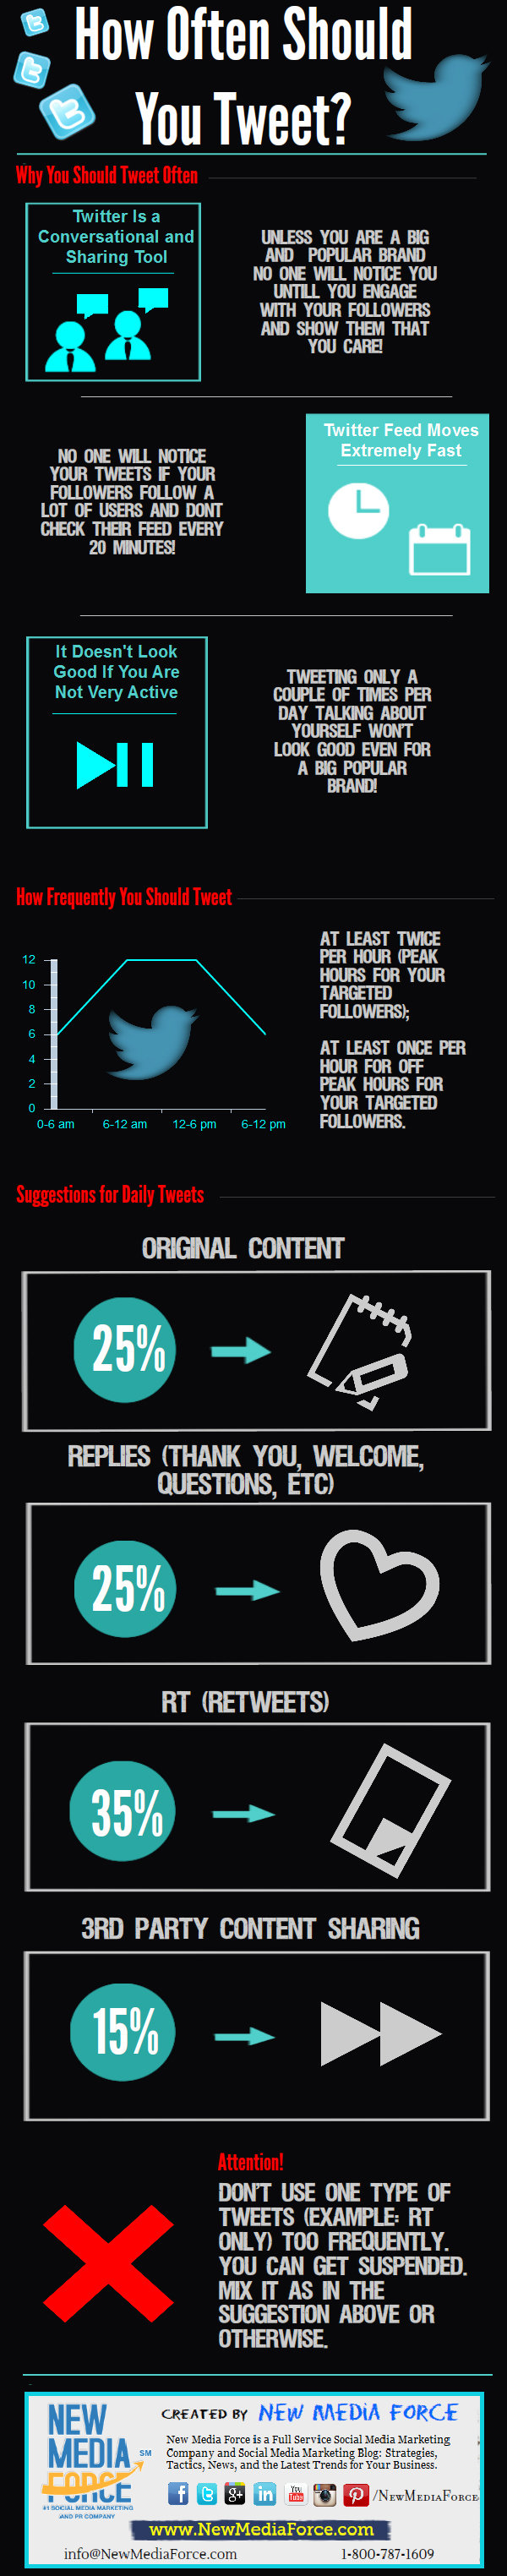 How Often You Should Tweet for a Superstar #Twitter Presence #Infographic